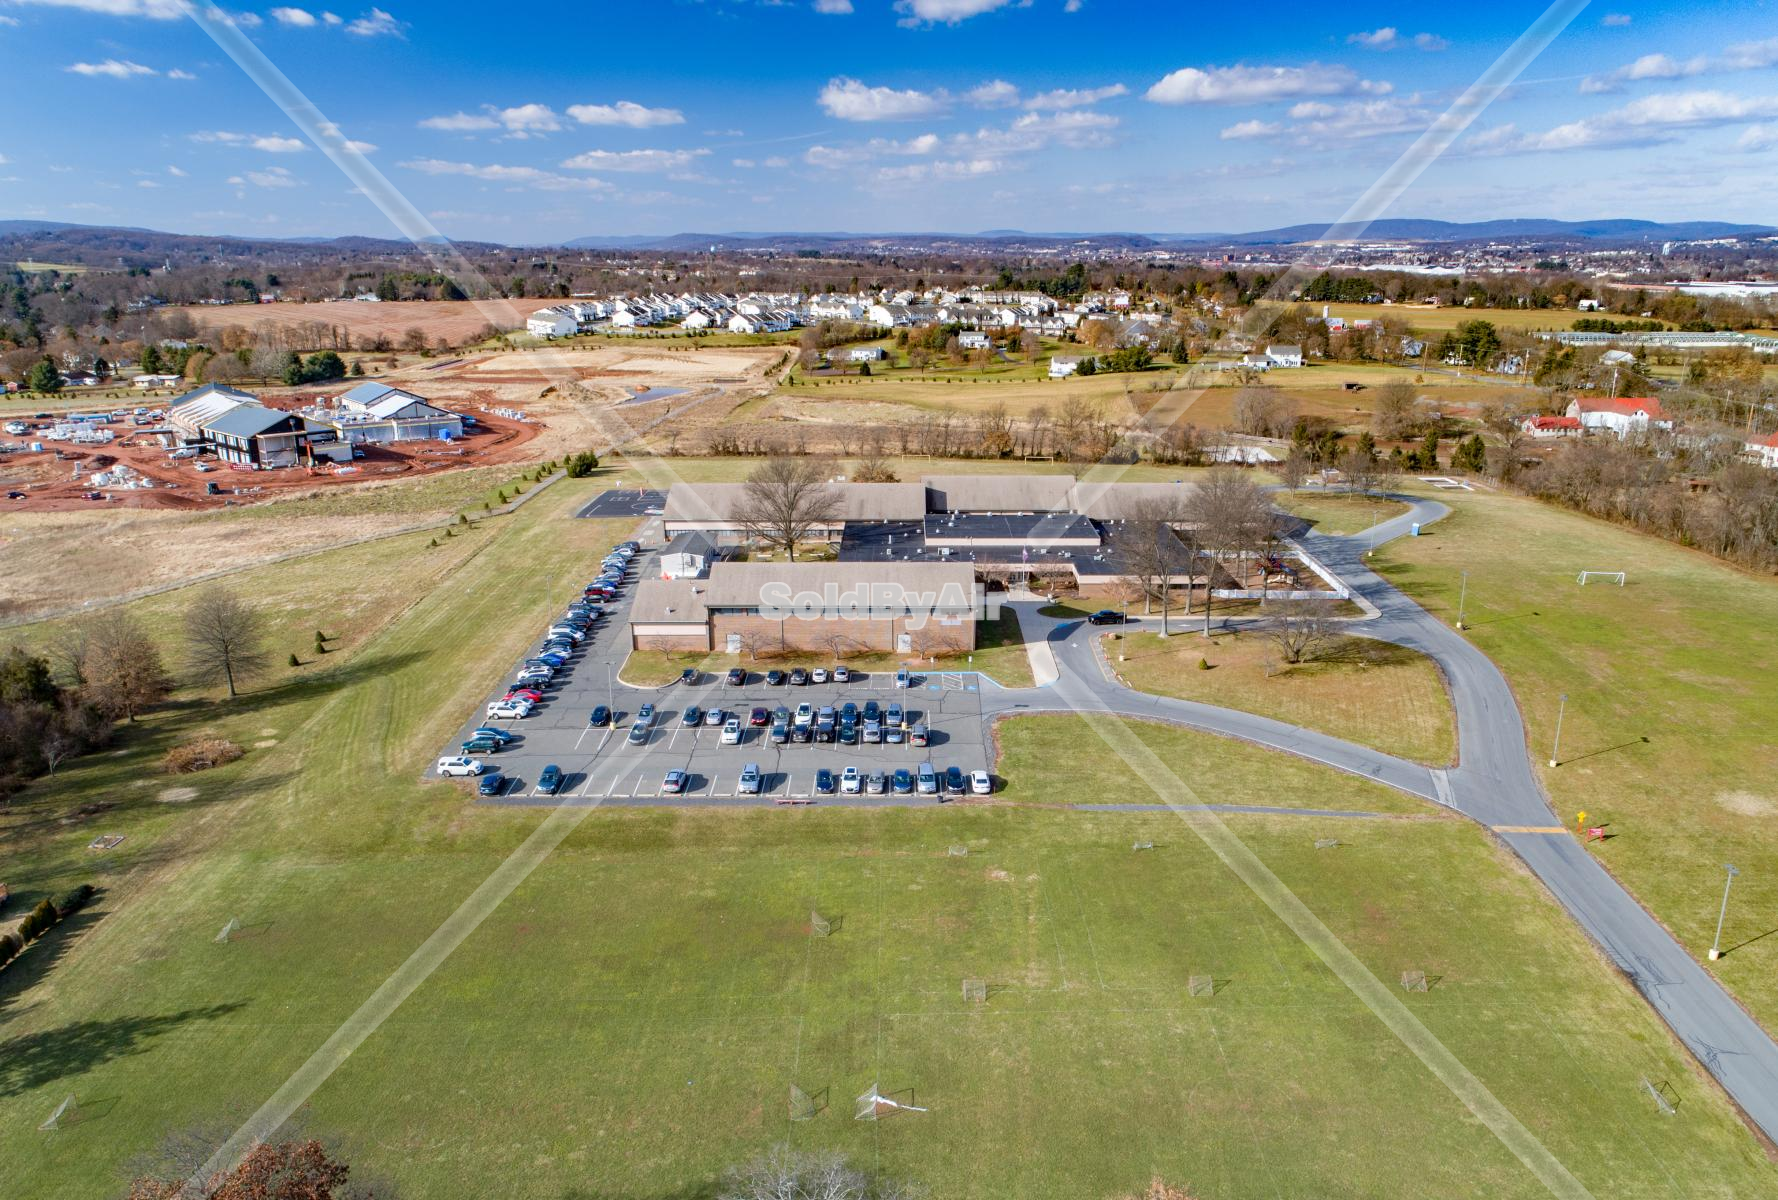 Drone Photo of East Conventry Elementary School in Pottstown Pennsylvania